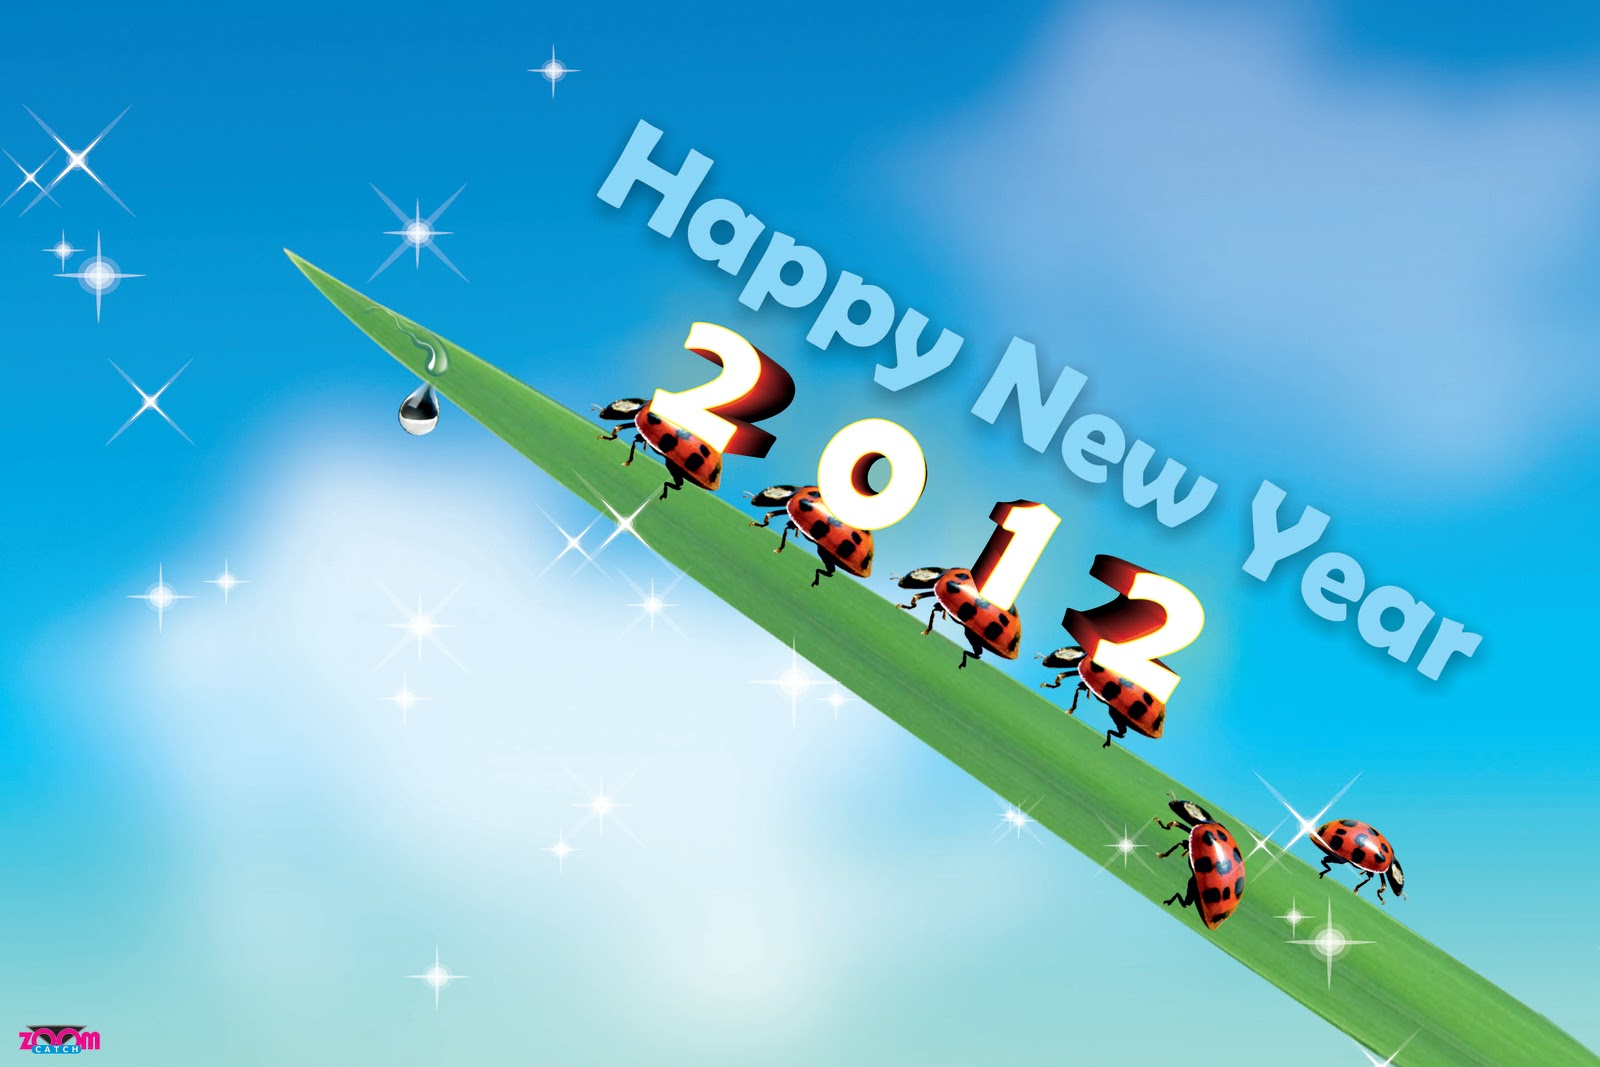 Wish You Happy New Year 2012 New Year Tamil SmS 2012